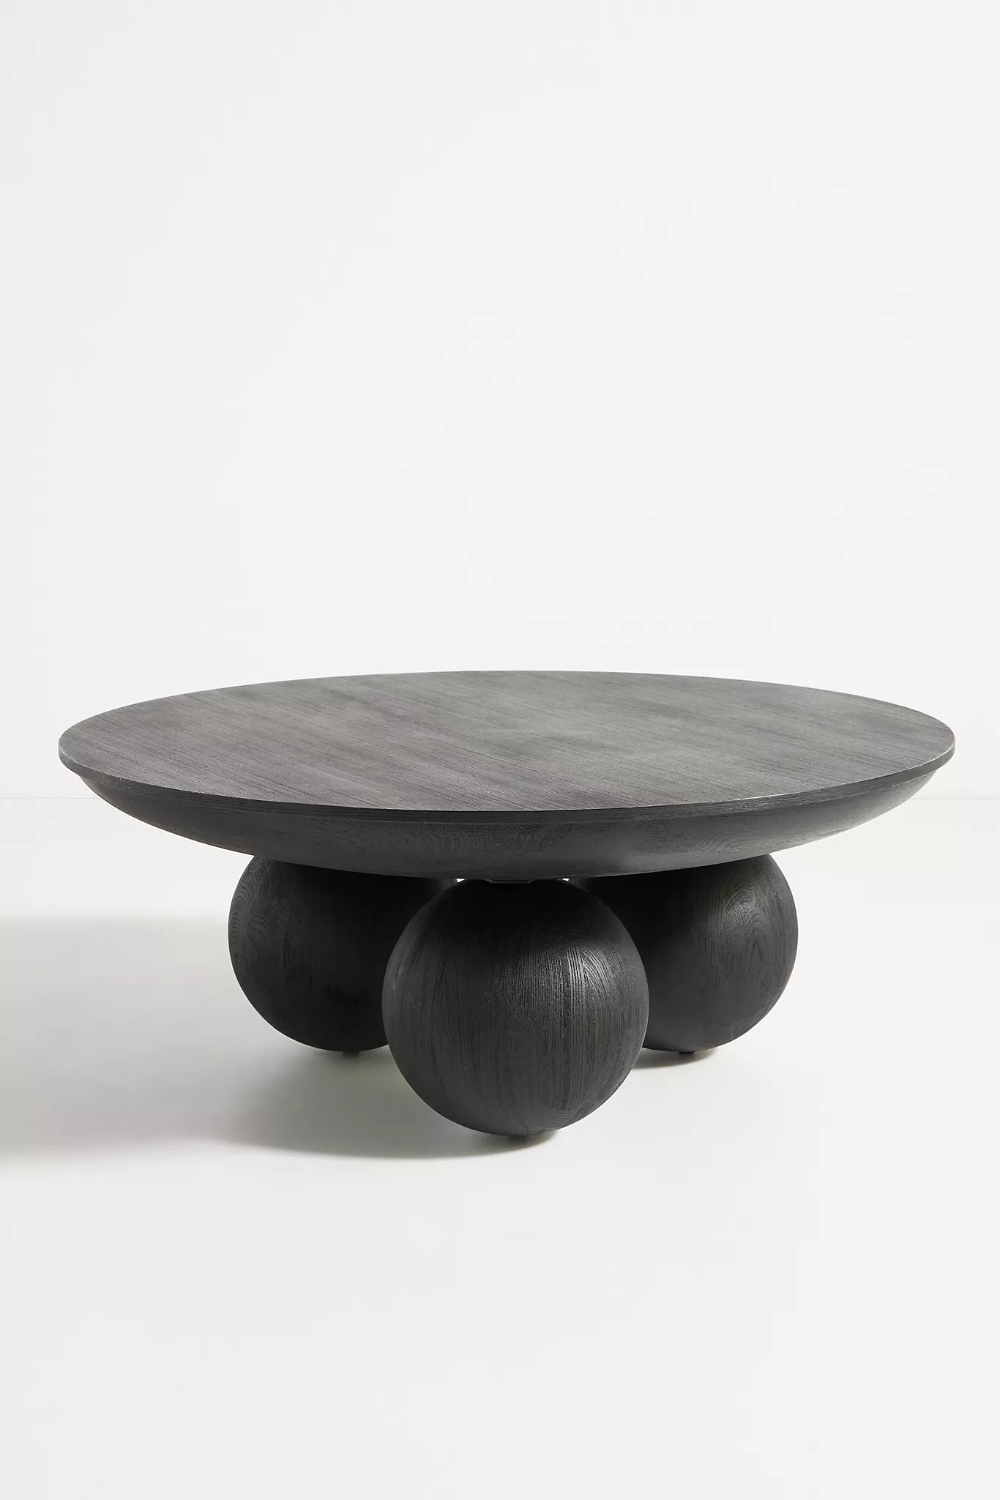 Sonali Round Coffee Table In 2021 Coffee Table Round Coffee Table Natural Wood Texture [ 1500 x 1000 Pixel ]